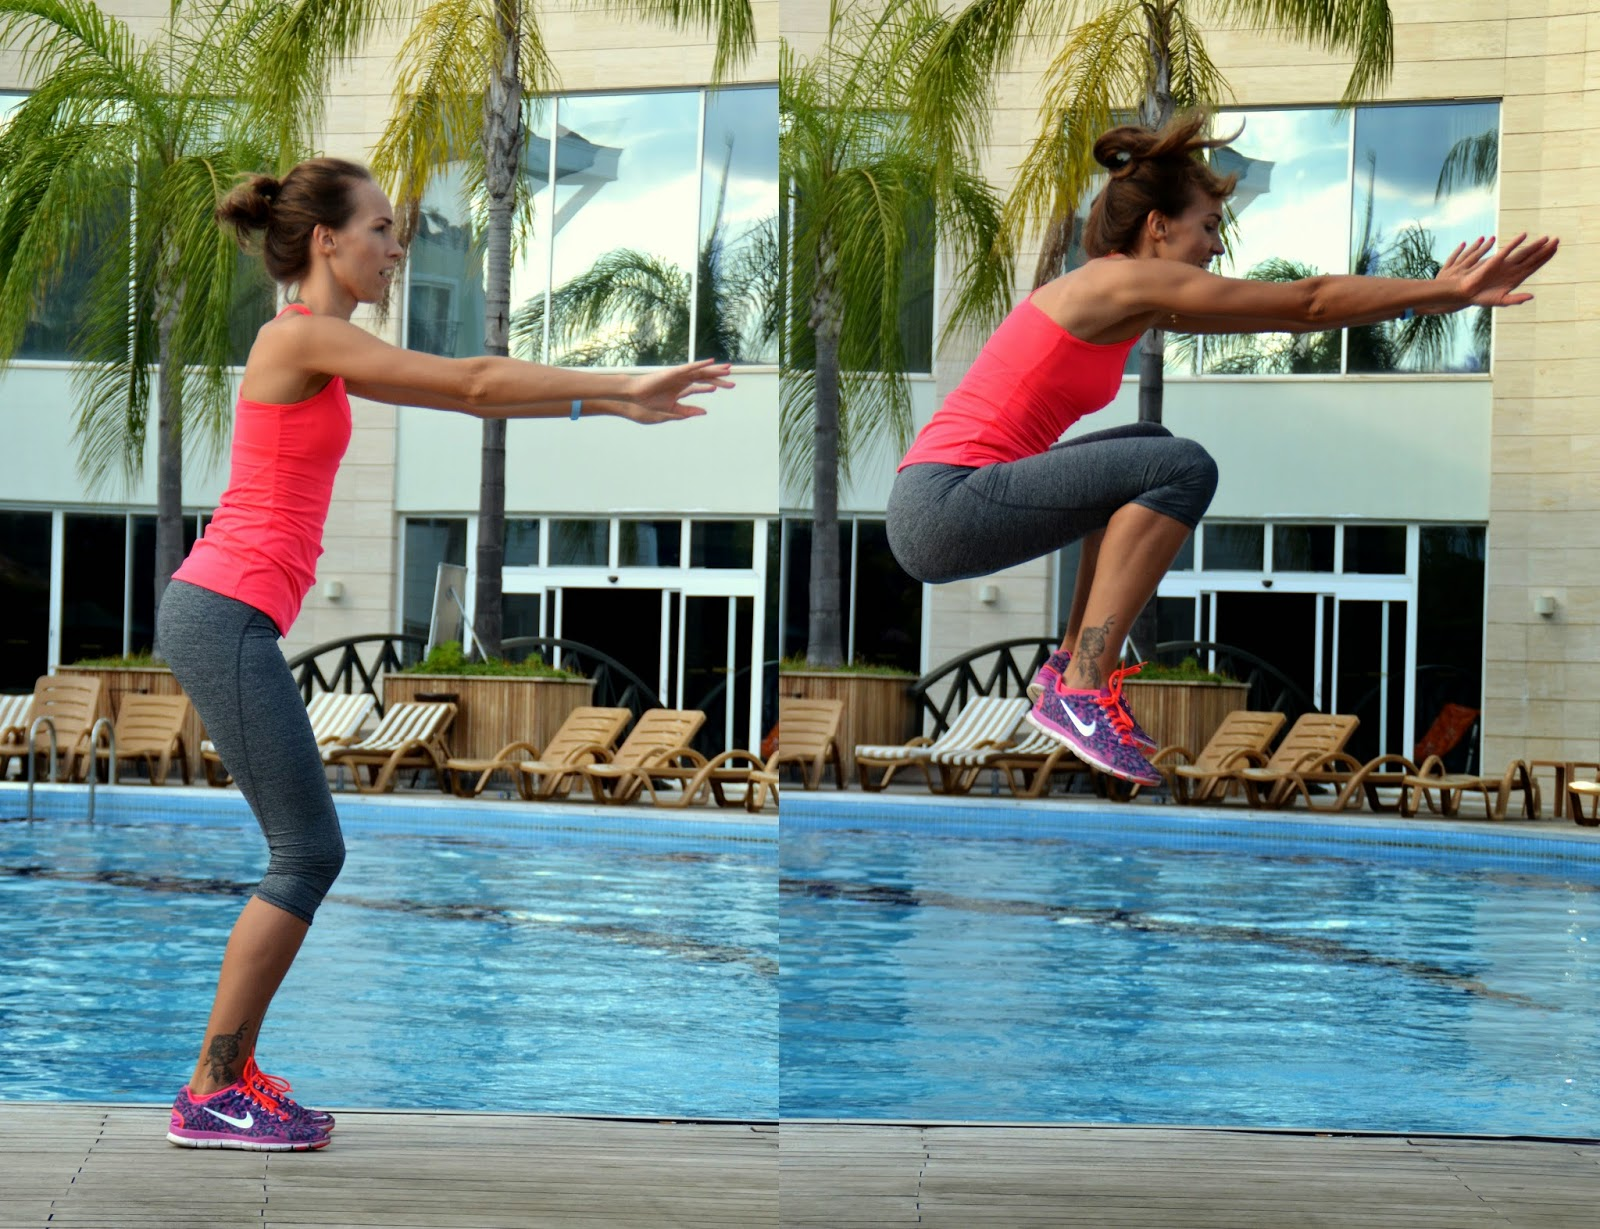 tuck-jump-leg-butt-workout-exercise-fit